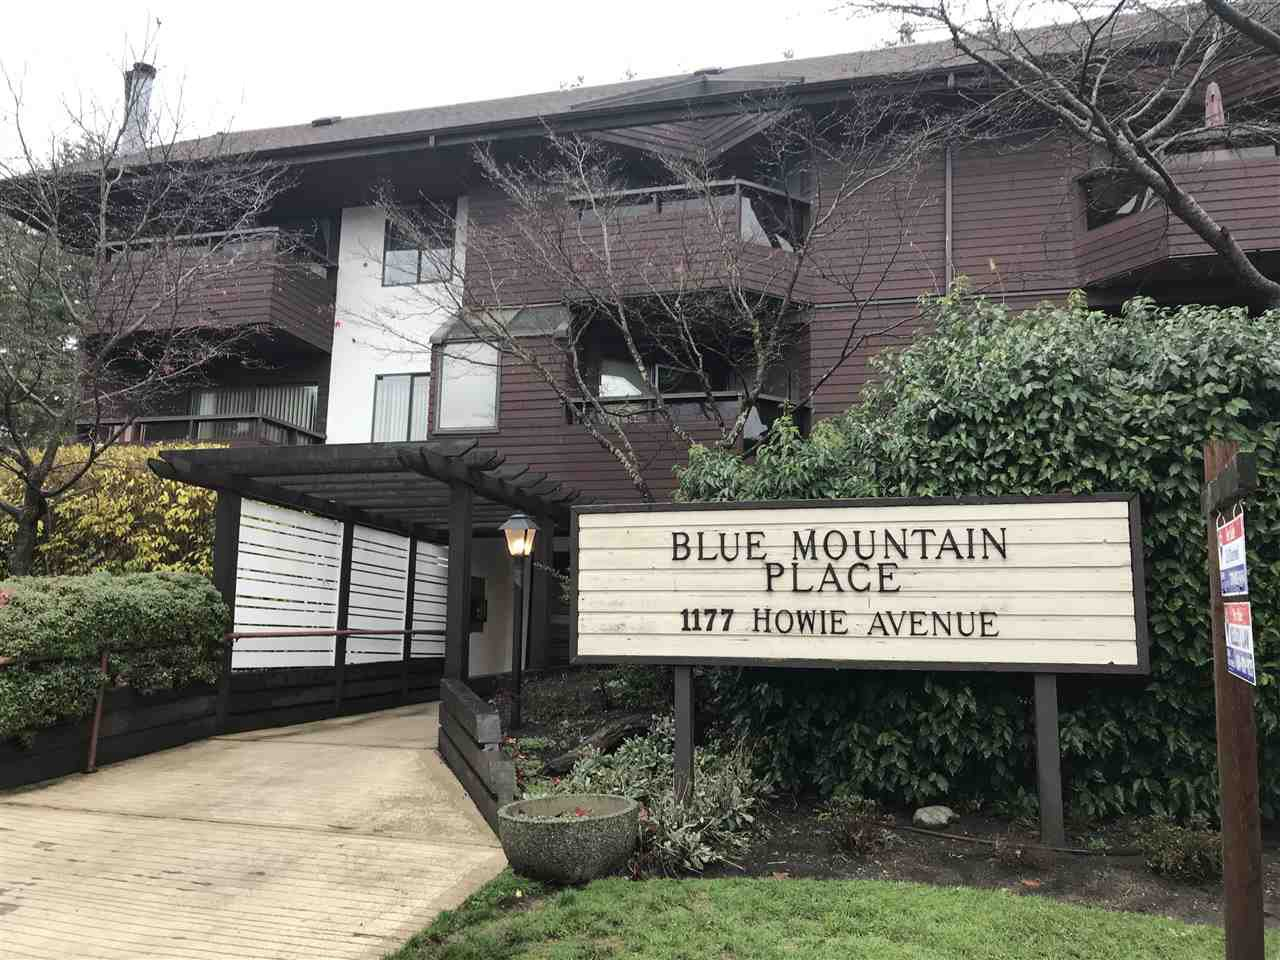 """Main Photo: 102 1177 HOWIE Avenue in Coquitlam: Central Coquitlam Condo for sale in """"BLUE MOUNTAIN PLACE"""" : MLS®# R2224908"""